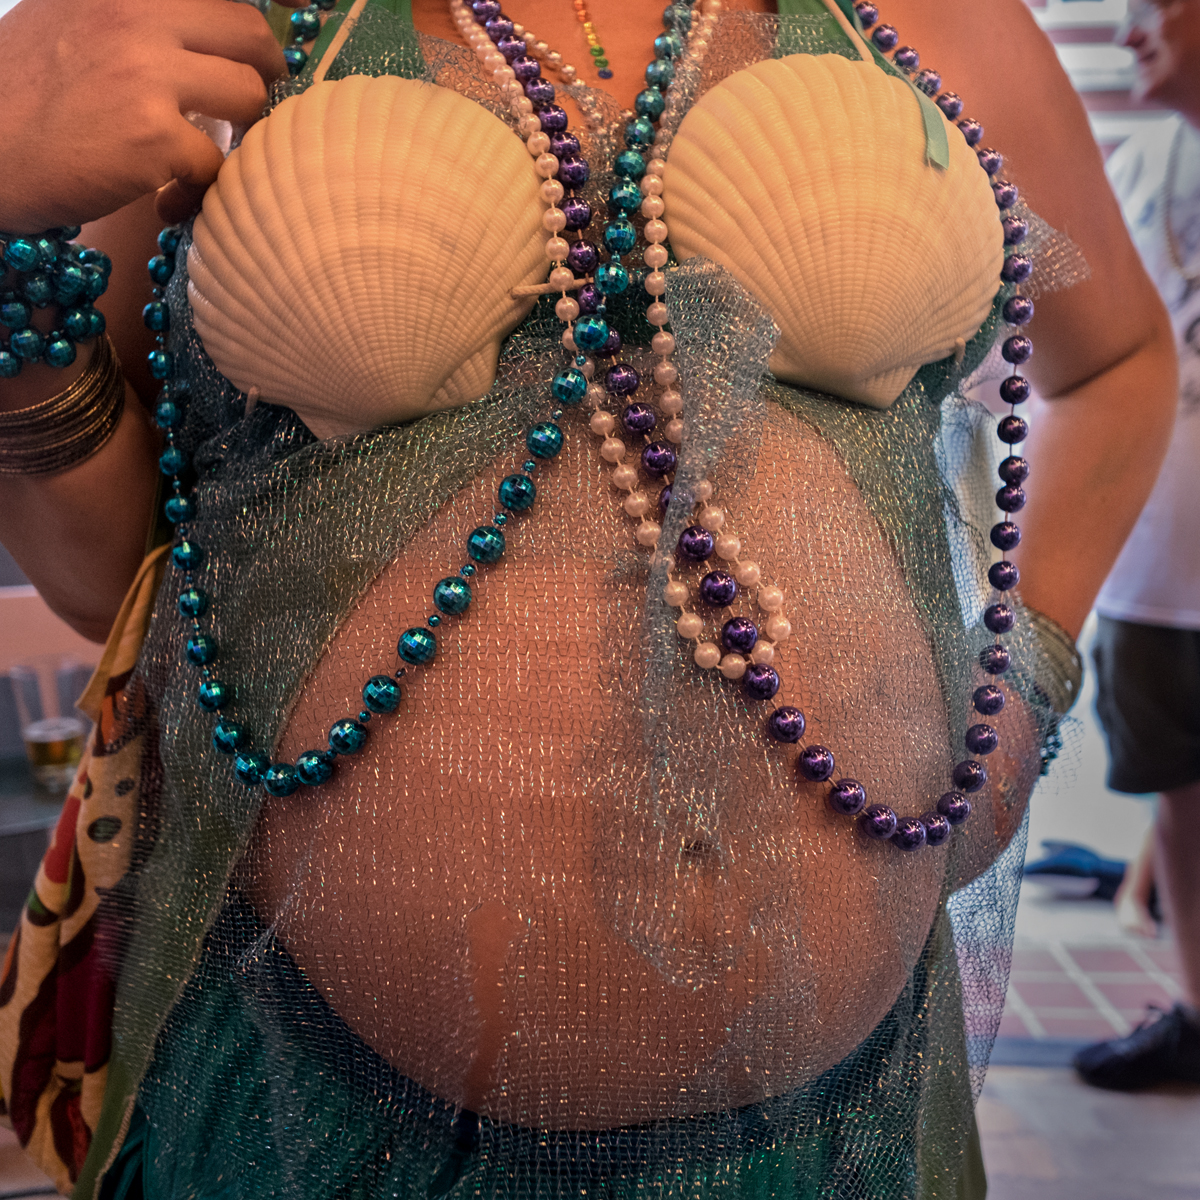 Anna with Child at the Mermaid Parade, Marshall, 2018